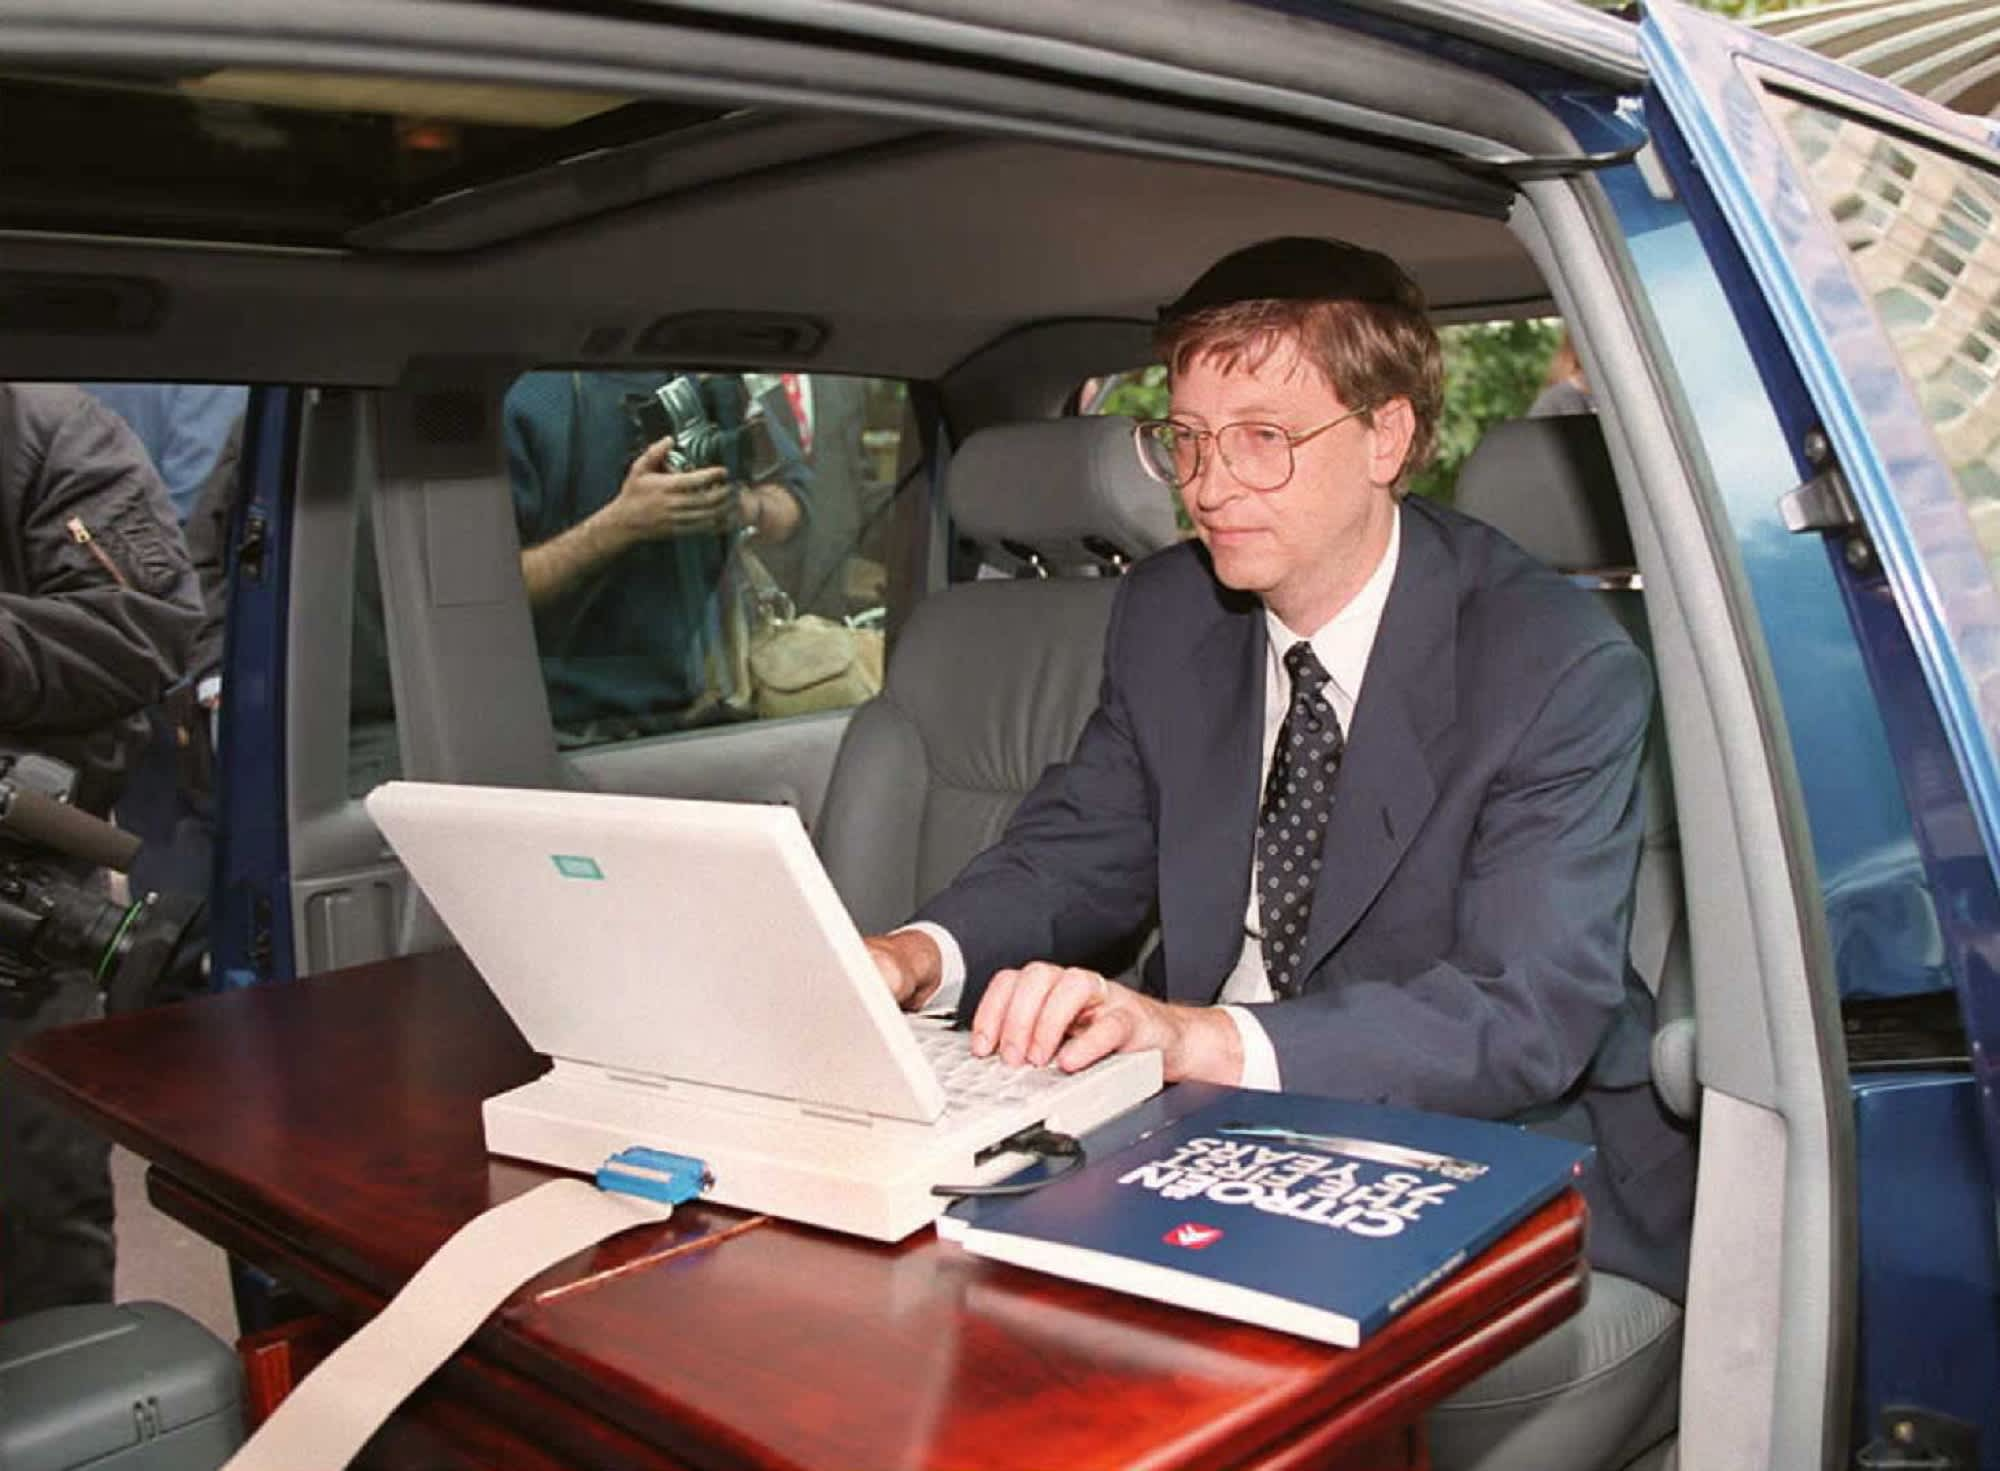 How Bill Gates described the internet to David Letterman in 1995